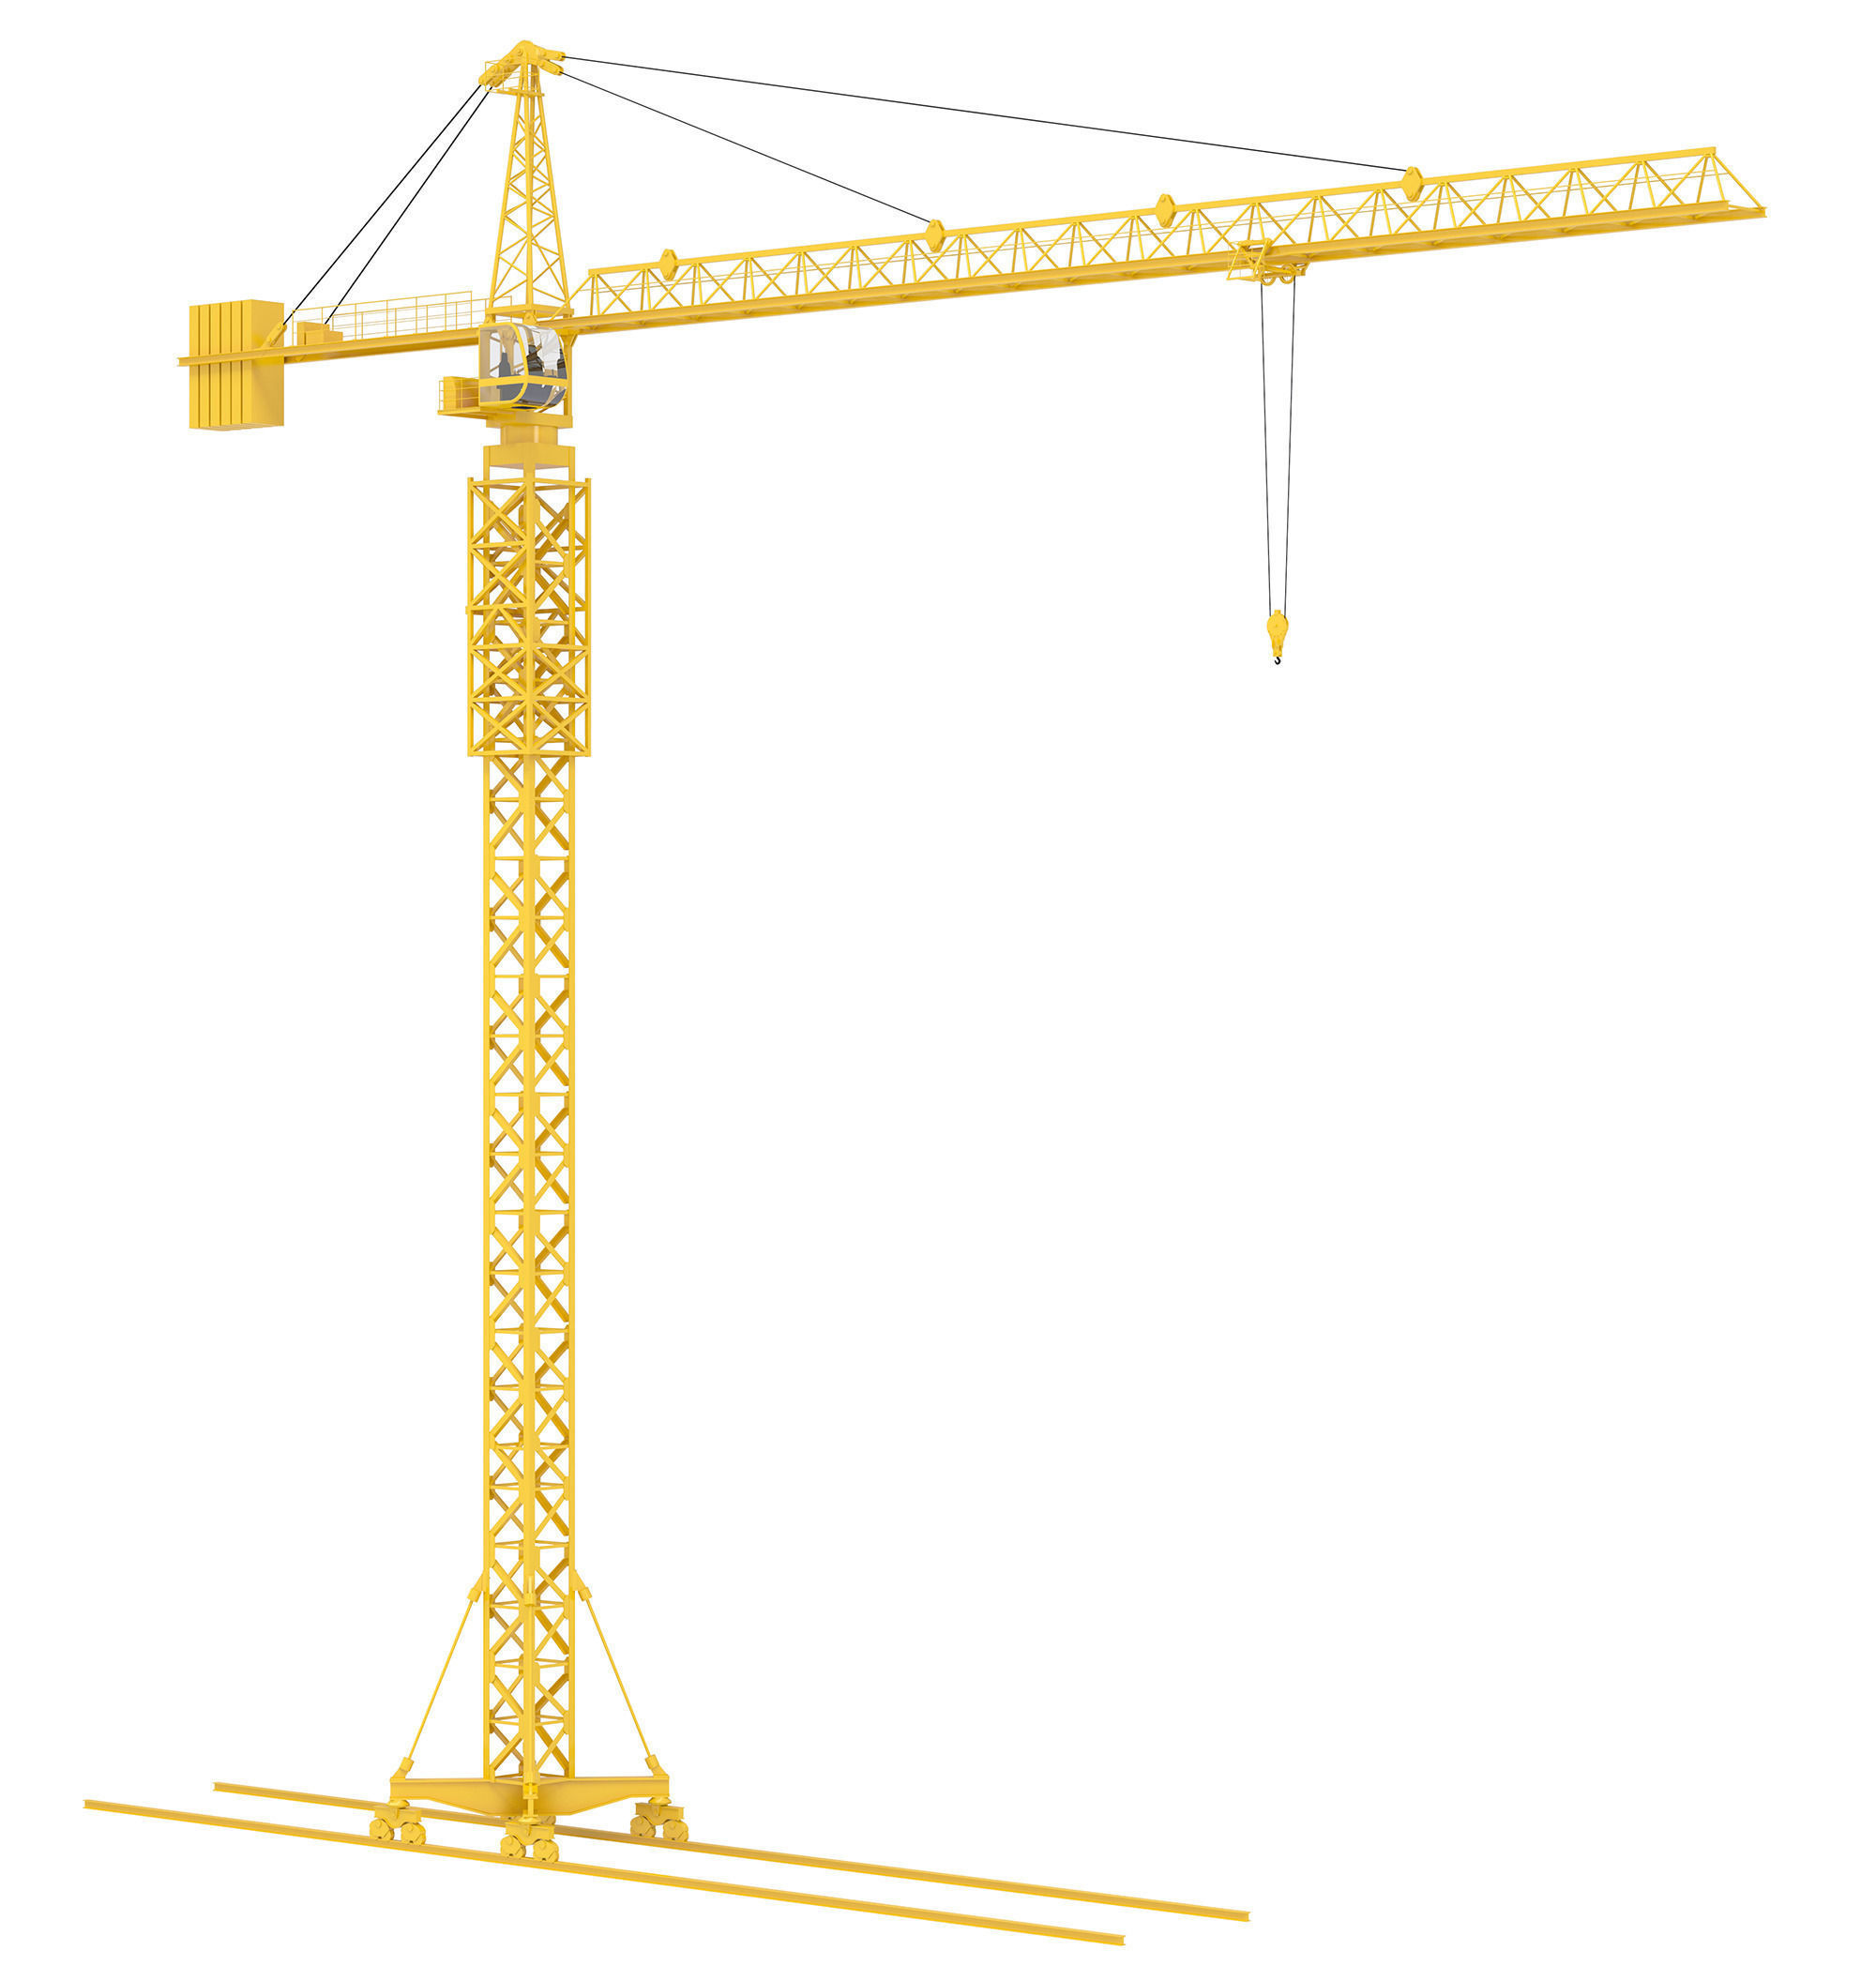 single word request - What is a tower crane in German - German ...